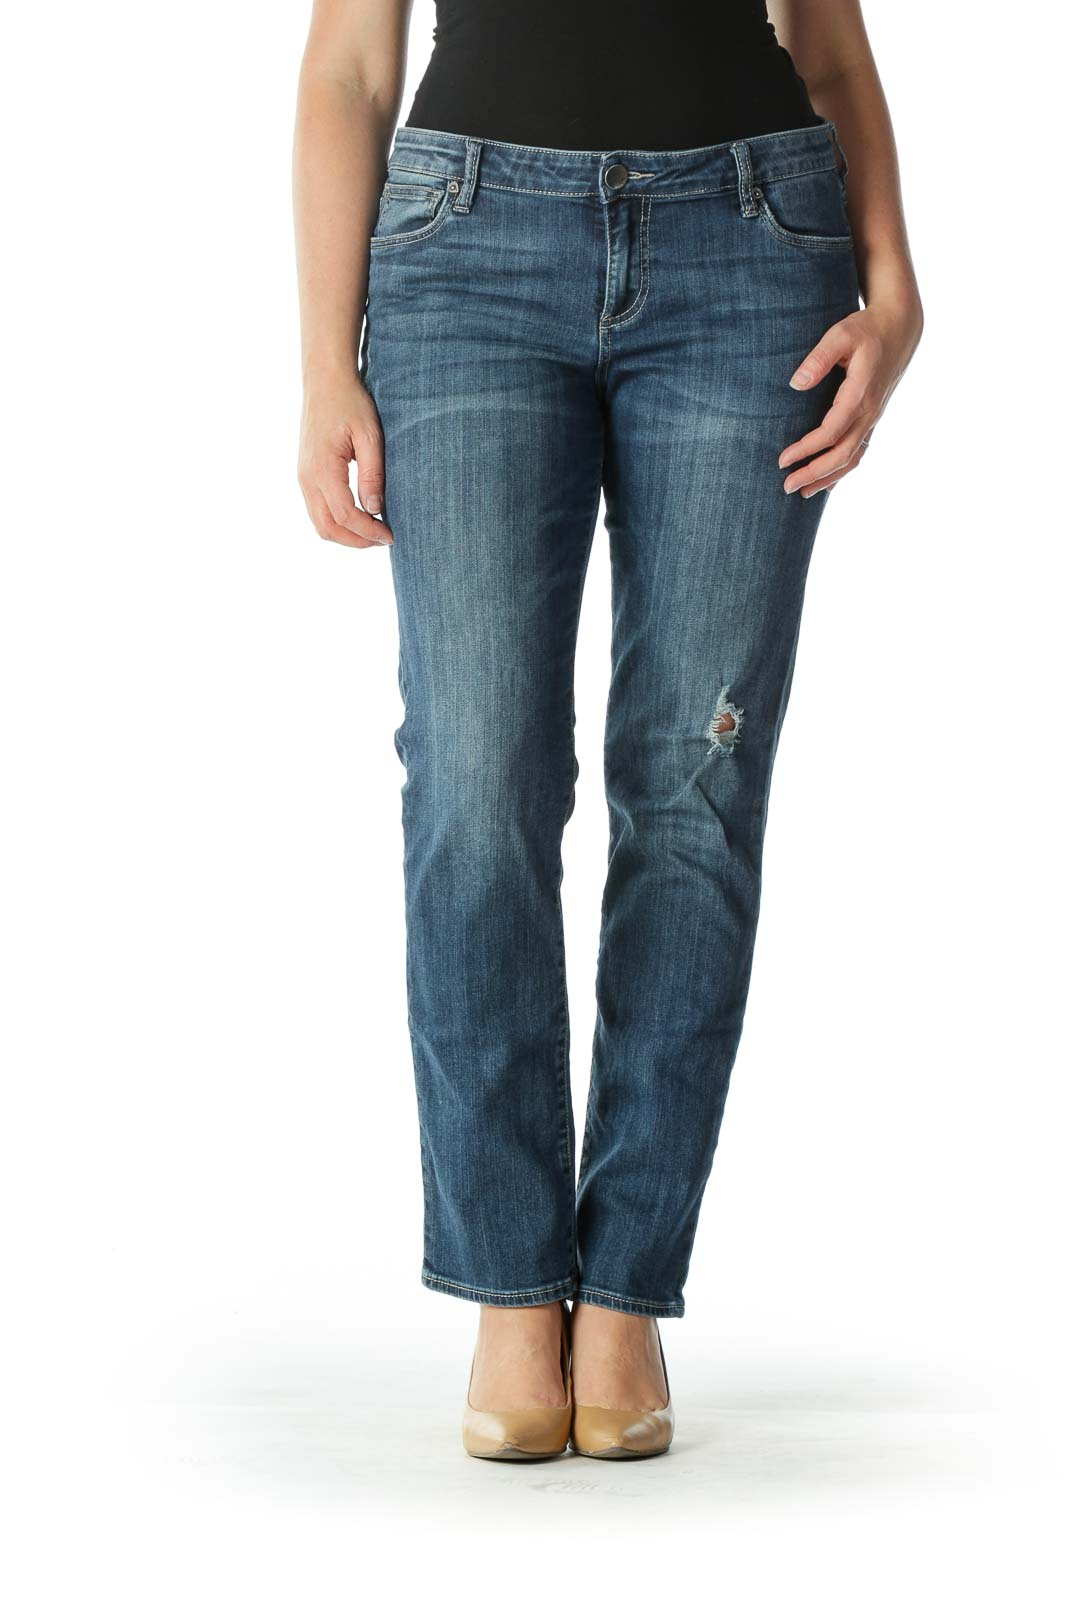 Blue Dark Wash Boyfriend Semi-Distressed Jeans